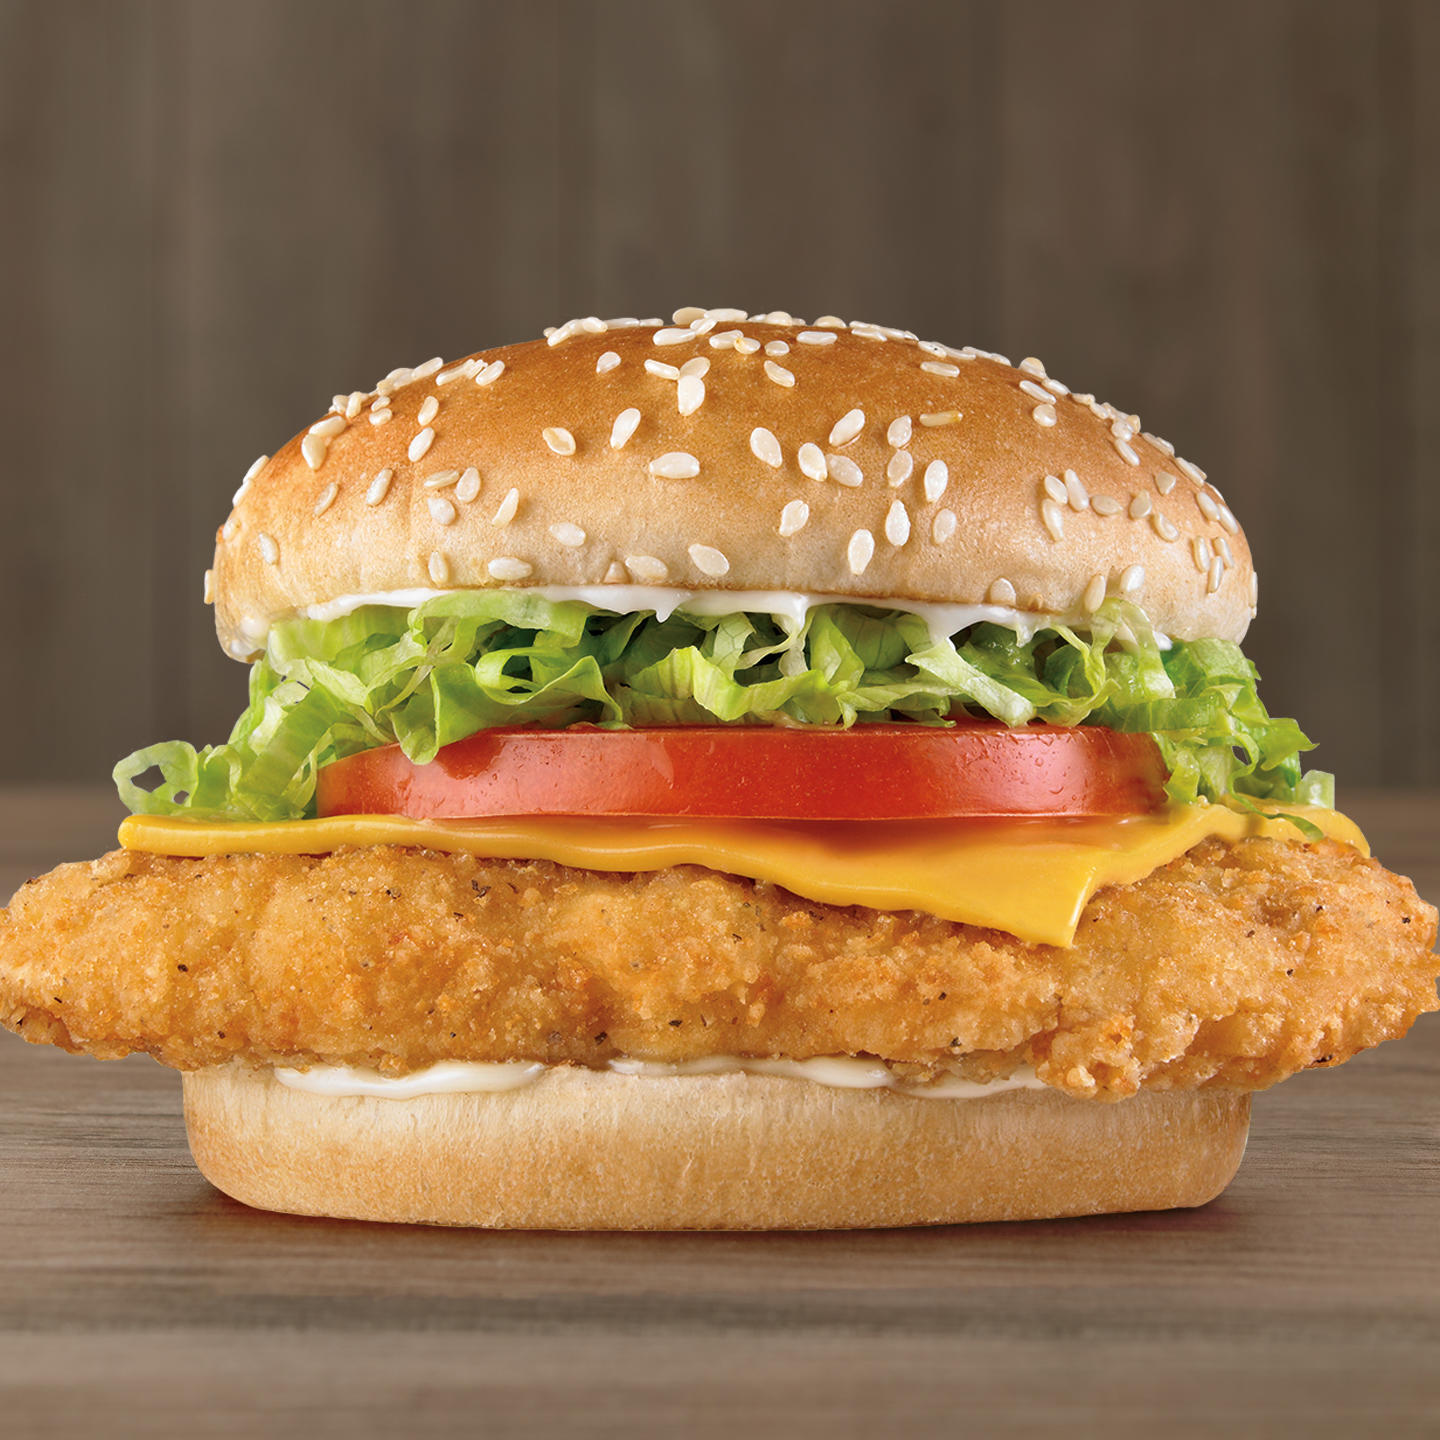 Open your eyes wide and set your sights on a quarter pound* of crispy, juicy, 100% white meat chicken topped with fresh iceberg lettuce and creamy mayo, American cheese, a slice of red-ripe tomato, all on a sesame seed bun.   *Pre-cooked weight